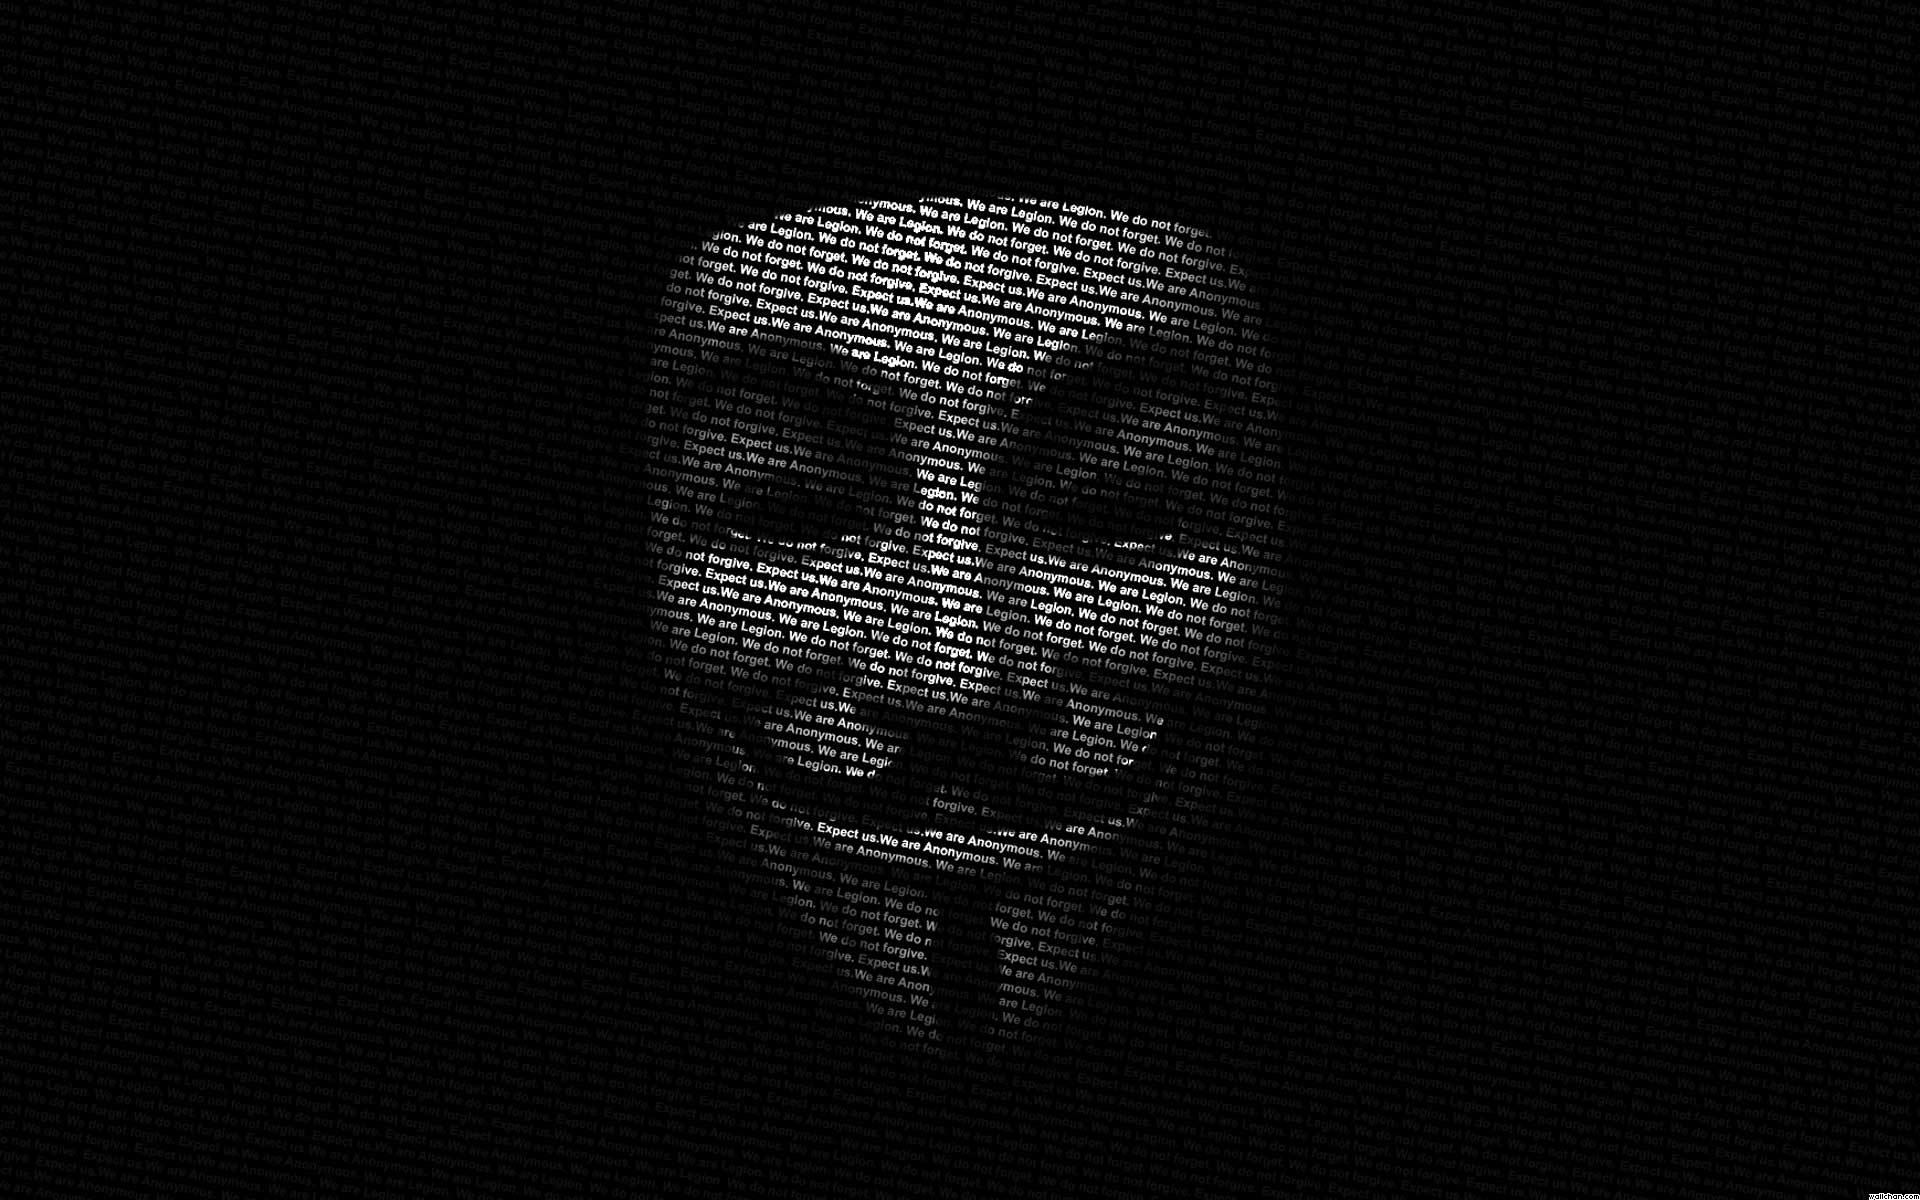 V For Vendetta Mask Wallpaper Activist Post: ...